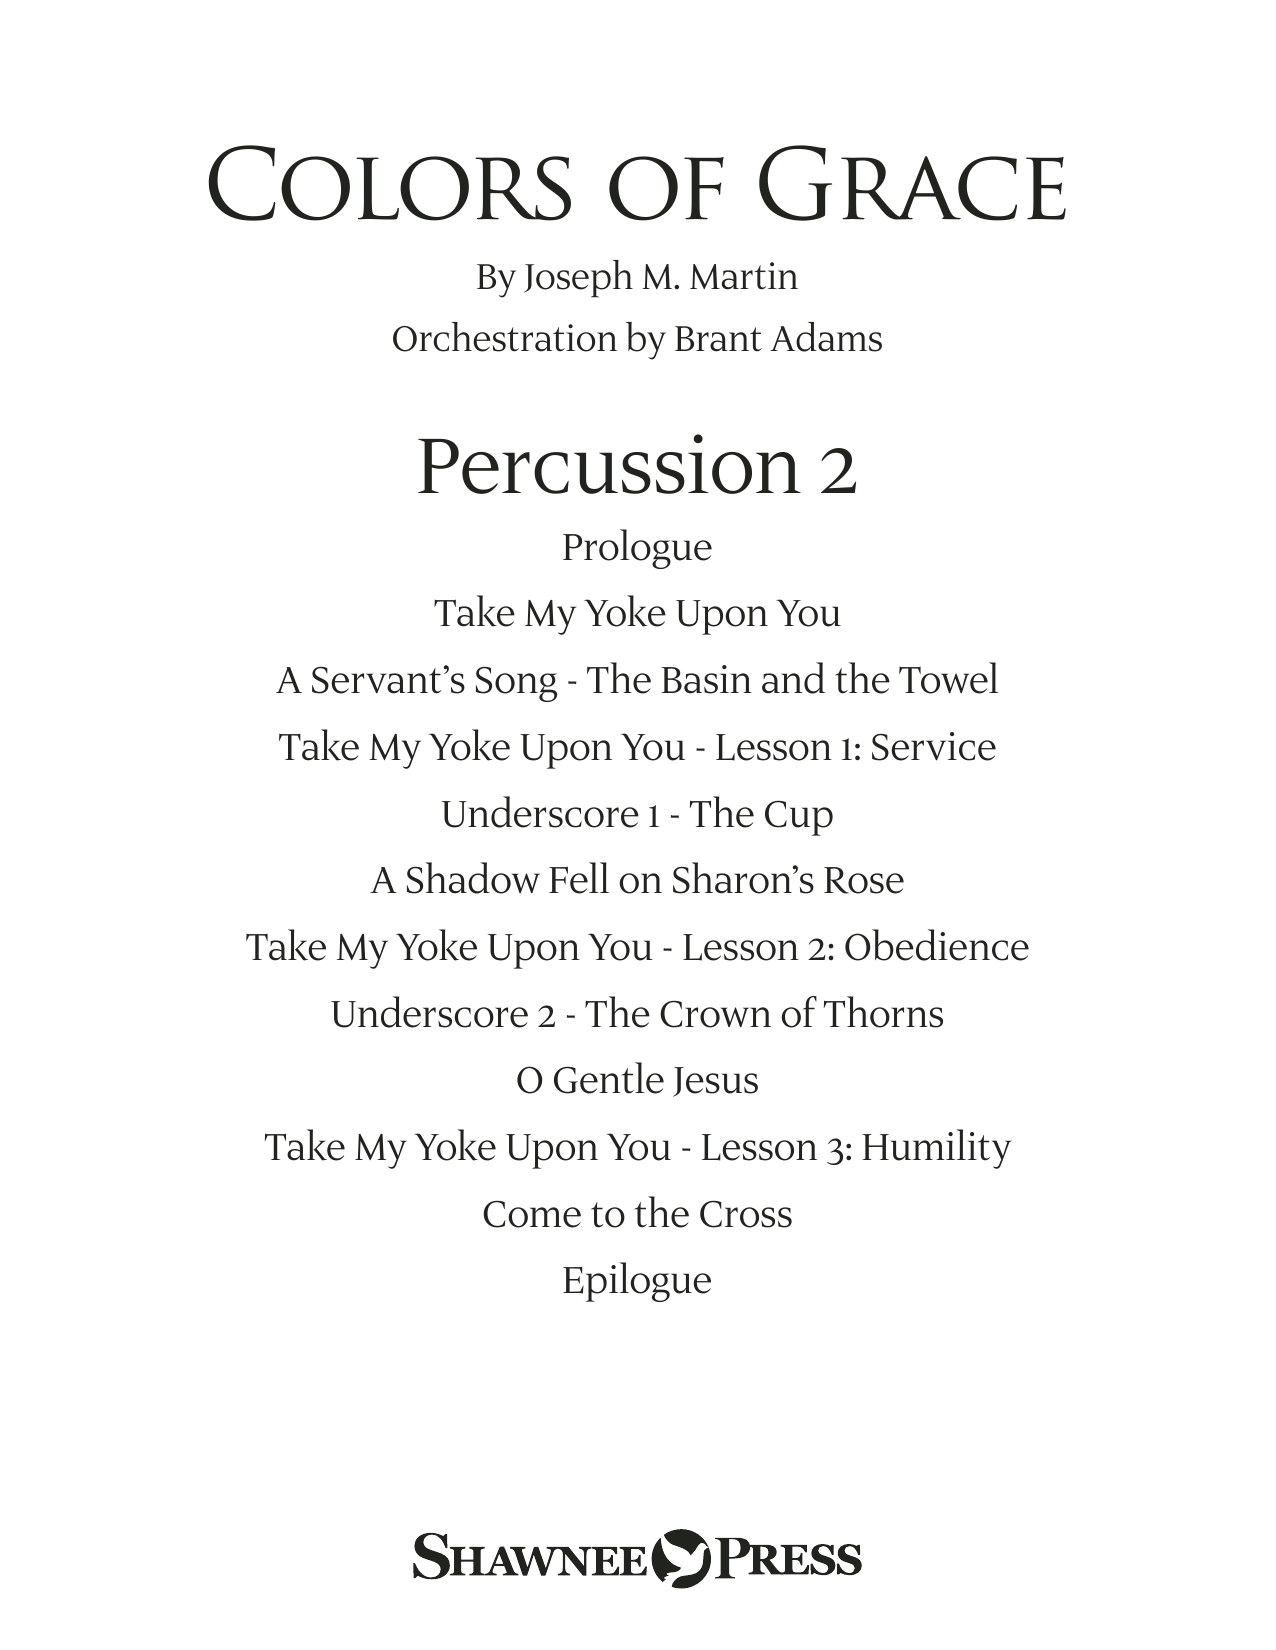 Colors of Grace - Lessons for Lent (New Edition) (Orchestra Accompaniment) - Percussion 2 (Choir Instrumental Pak)